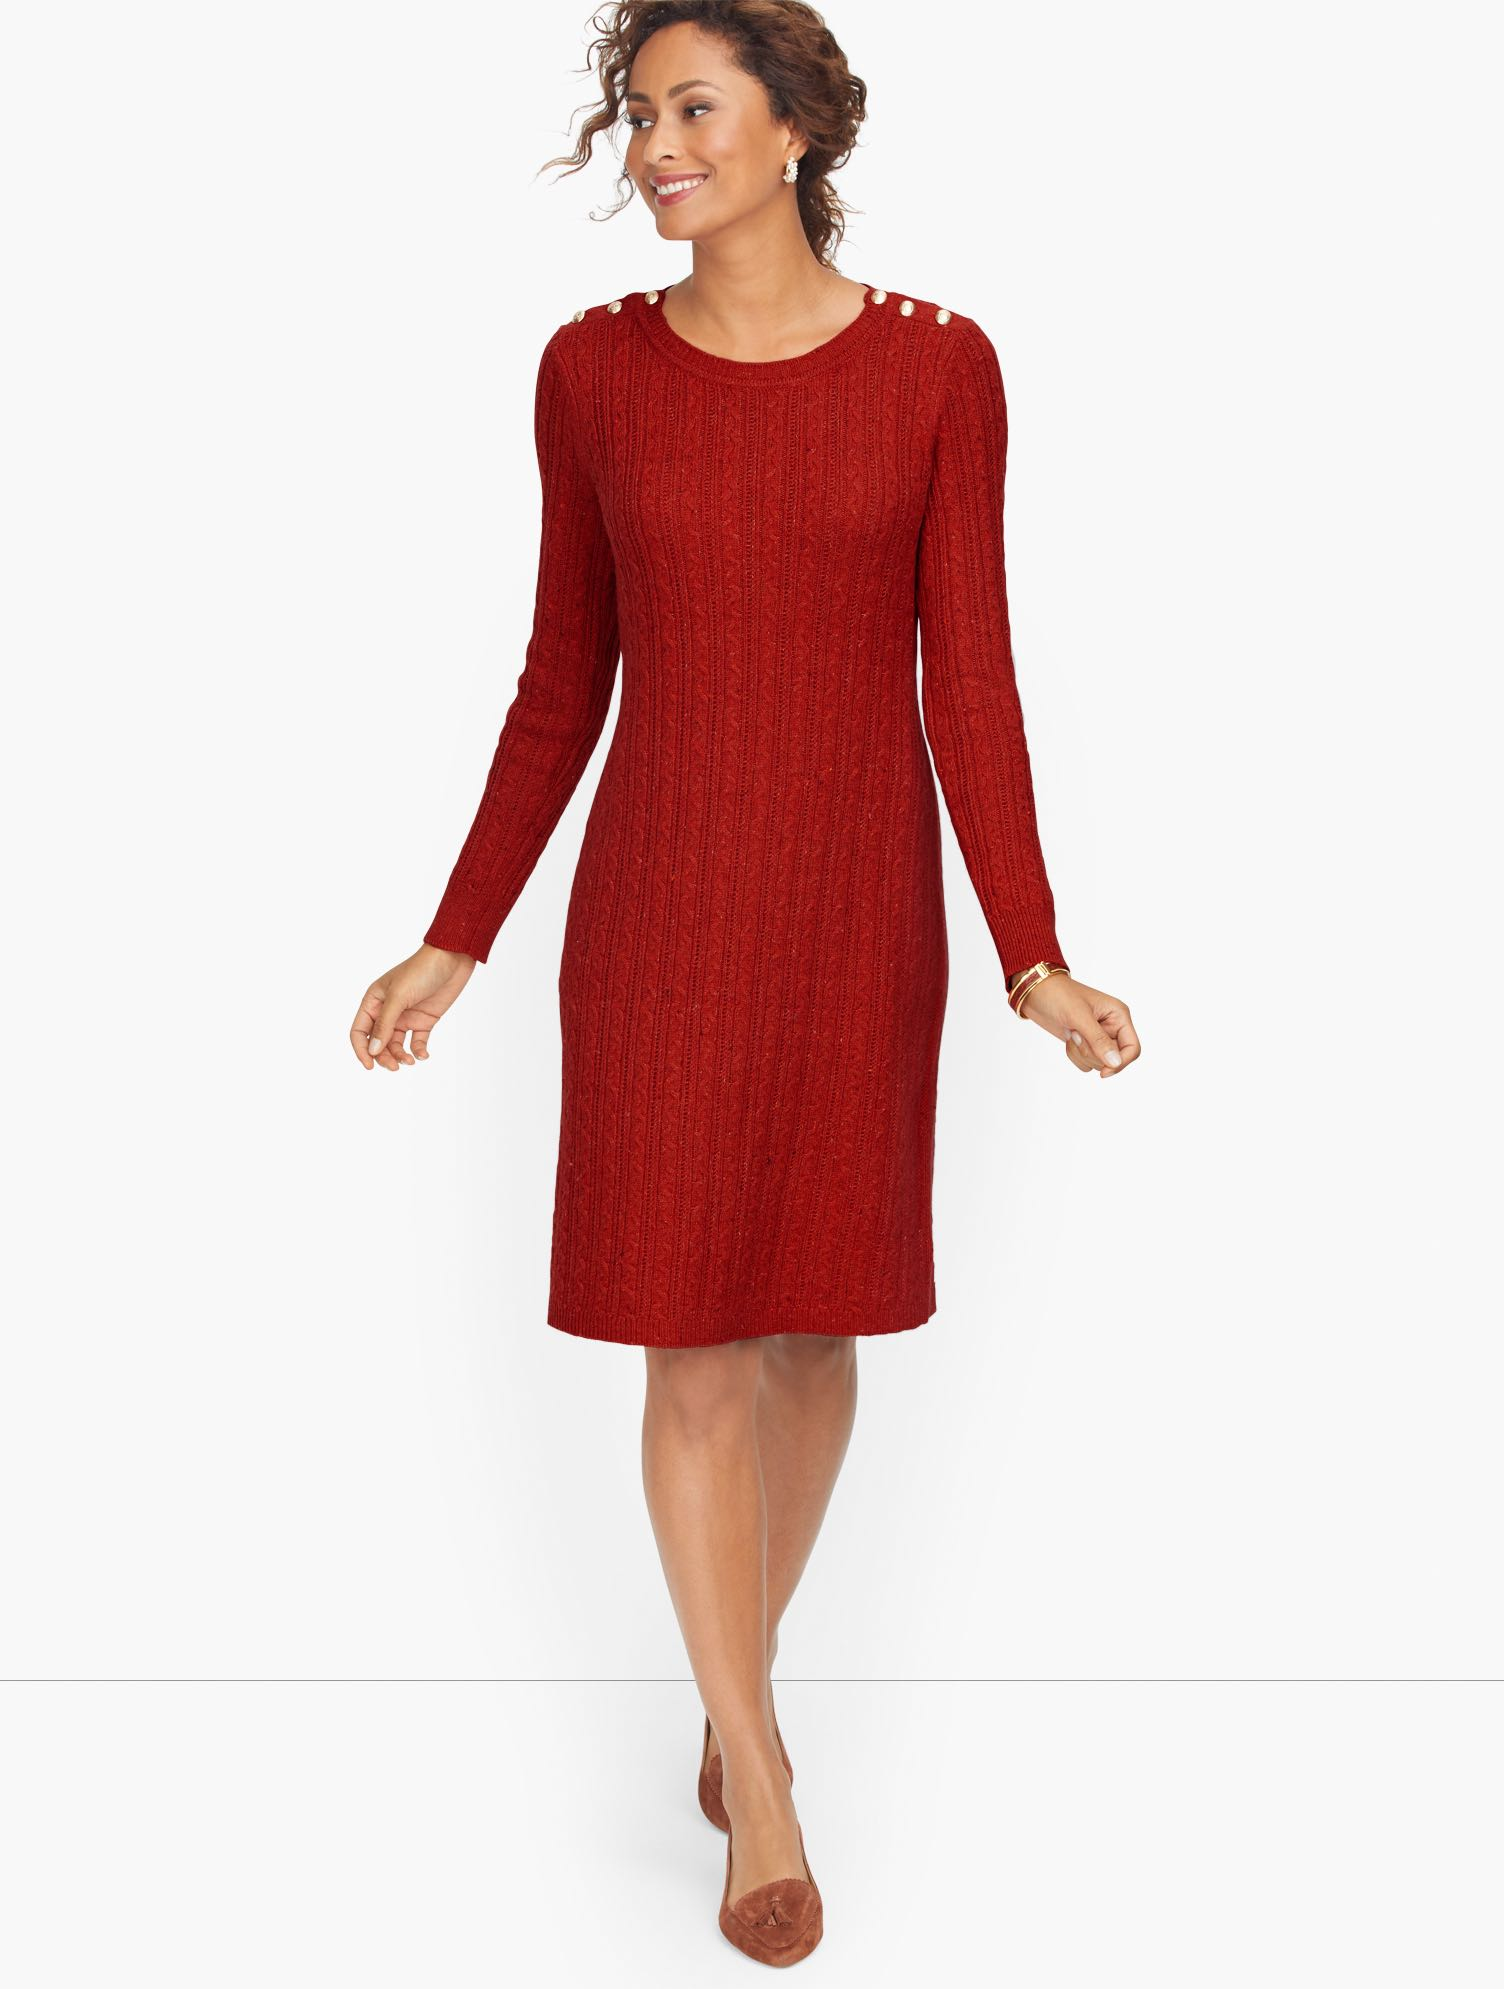 Nothing says cozy like a sweater dress. Iconic cable stitch keeps it classic. Buttons at the shoulders add charm. Features Silhouette: Sheath Neckline: Jewel Sleeve Length: Long Closure: Pullover Imported Fit: Misses: 37 1/2 inches; Petite: 36 inches Material: 57% Cotton, 28% Acrylic, 15% Polyester Care: Machine Wash Cold, Reshape/Lay Flat to Dry Cableknit Button Shoulder Sweater Dress - Rich Russet Tweed - XL Talbots